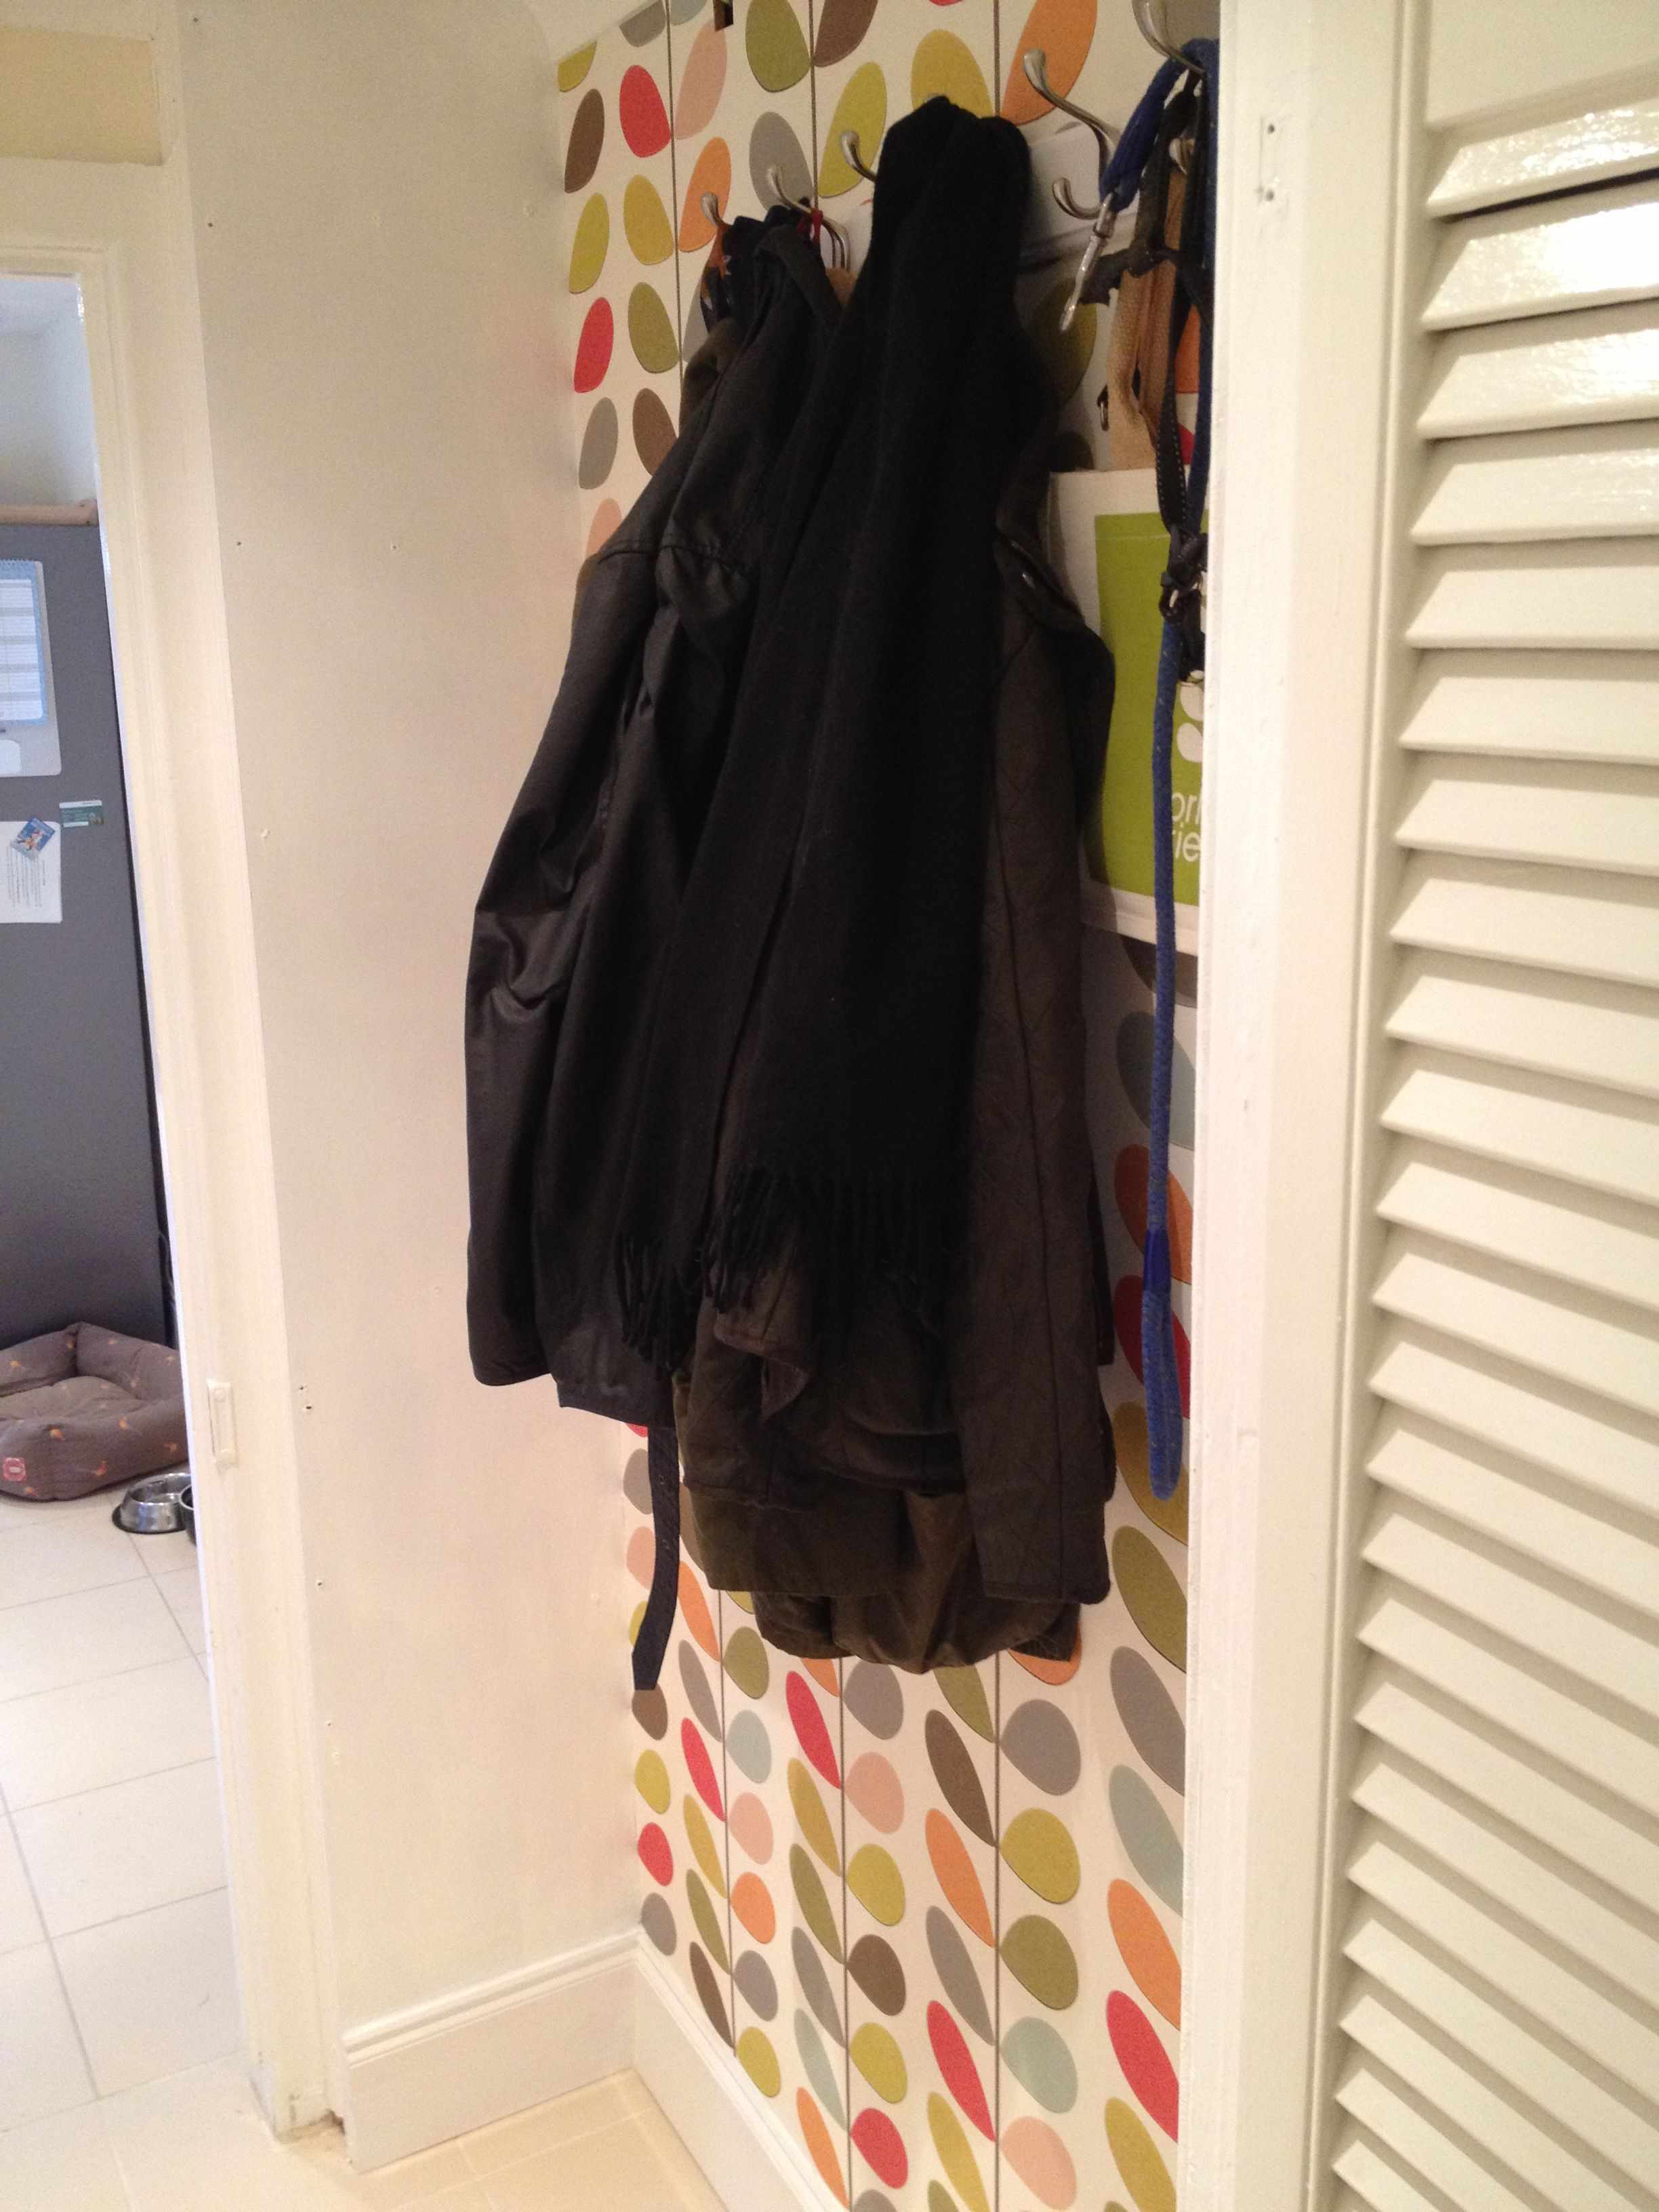 Bright hallway wallpaper  Handy coat hanging area in narrow hallway made bright and colourful